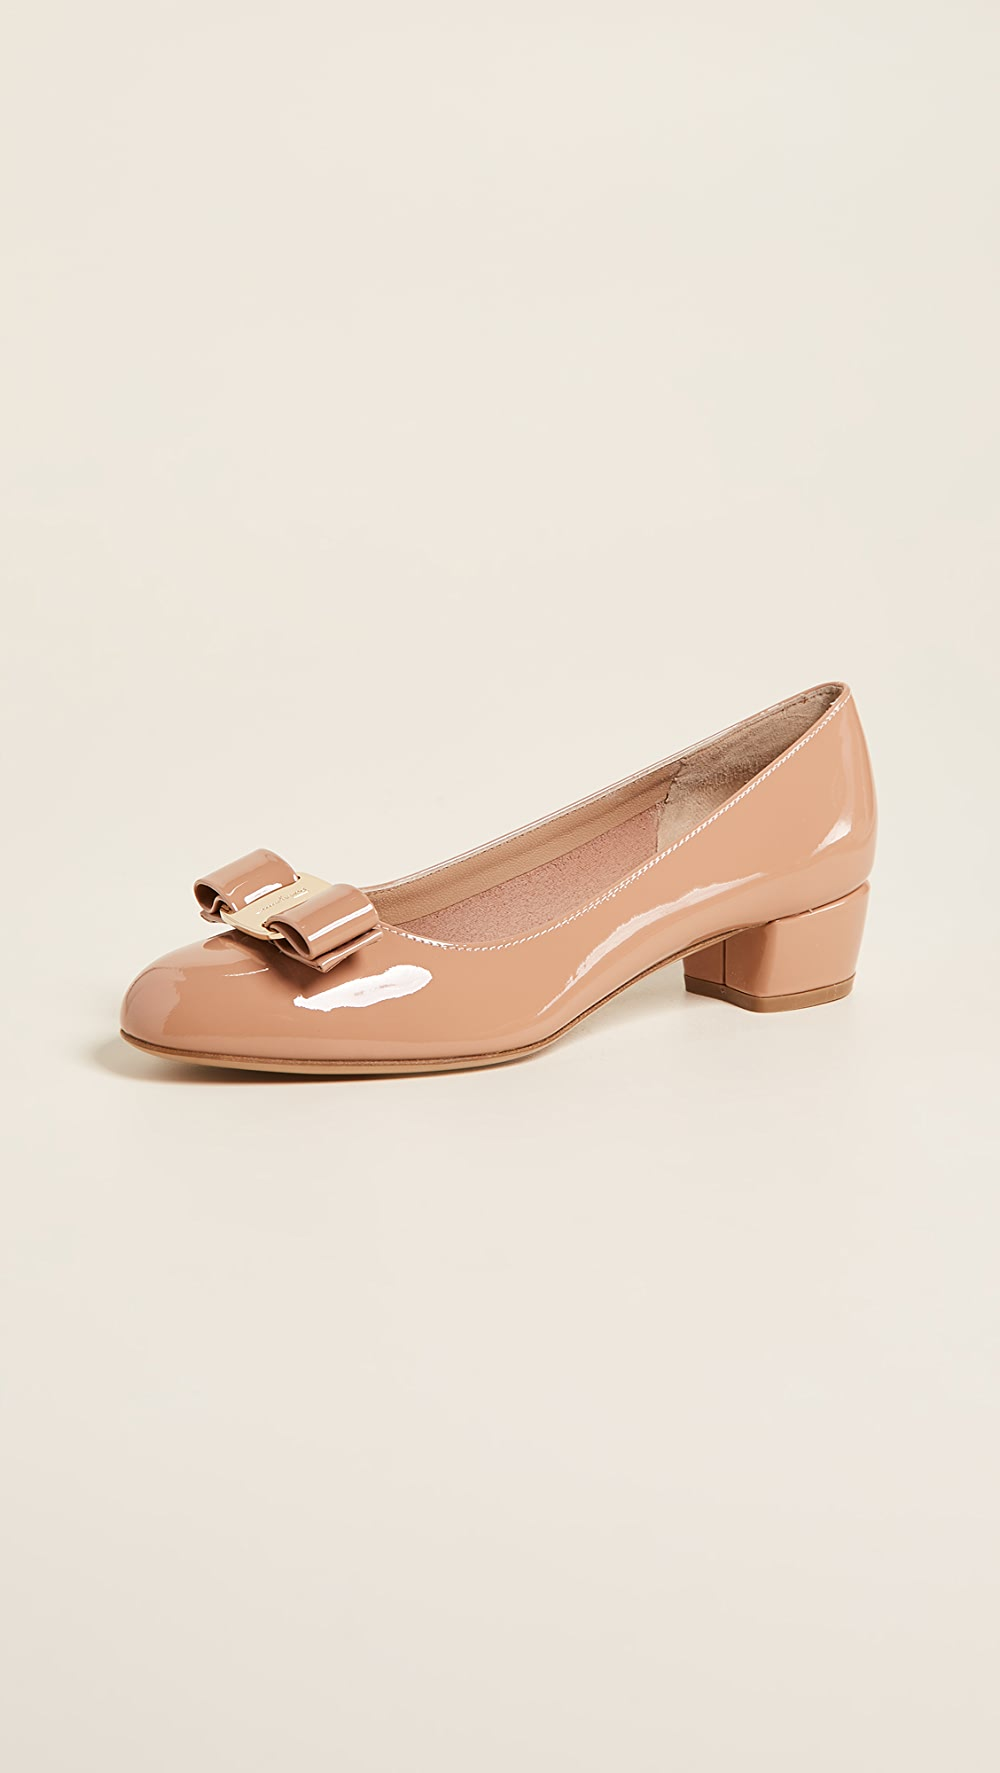 2019 Fashion Salvatore Ferragamo - Vara Low Heel Pumps A Plastic Case Is Compartmentalized For Safe Storage